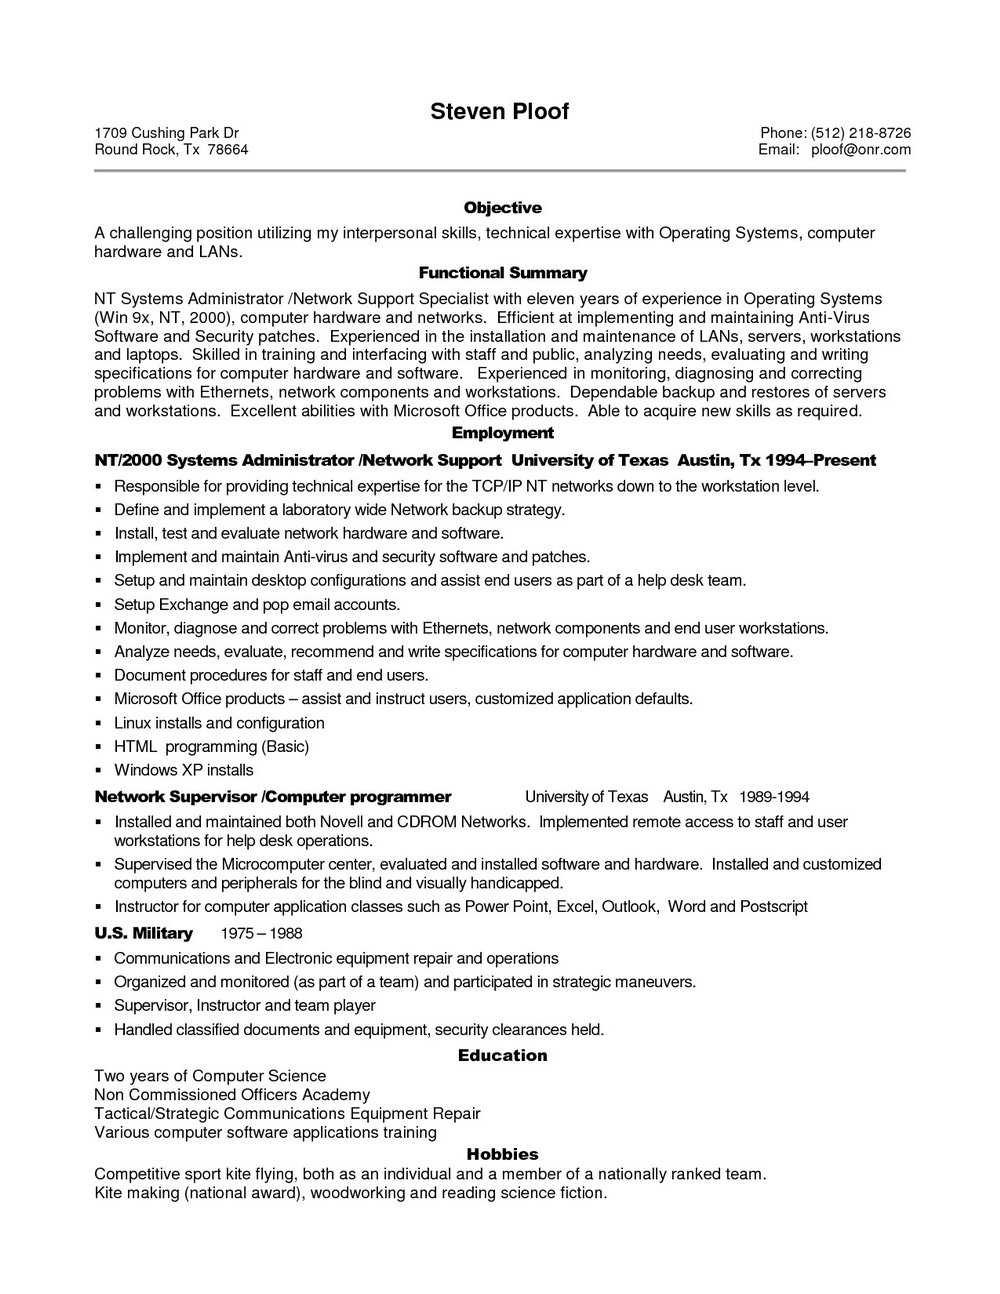 Resume Samples For Testing Professionals